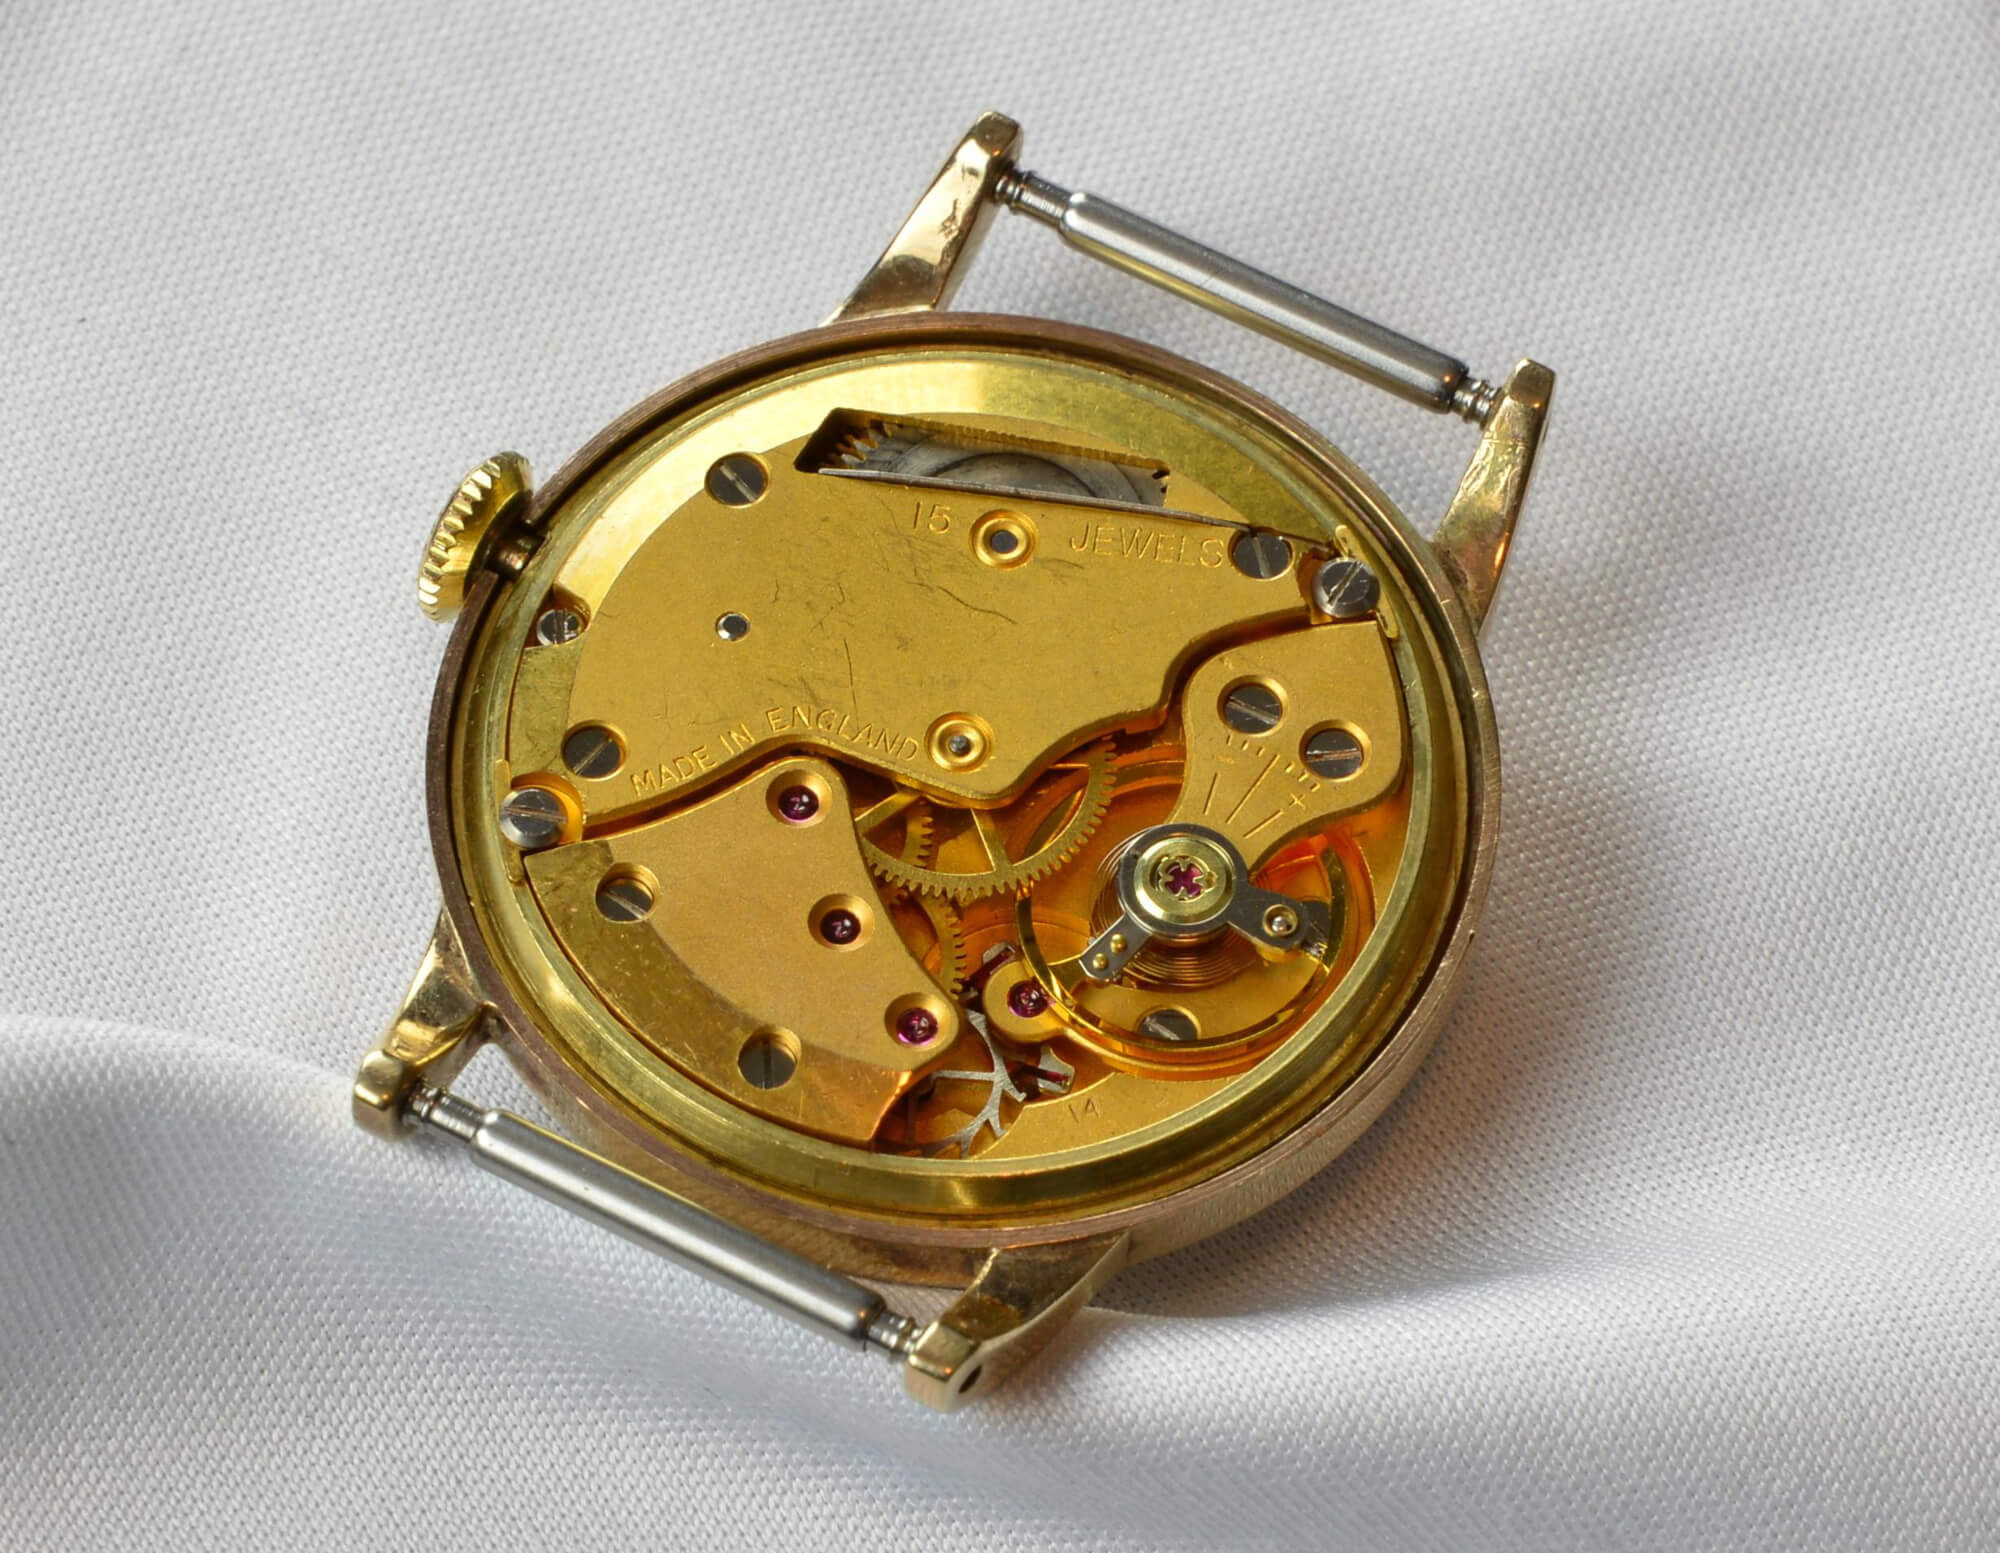 gold-case-watches-pt-2-11